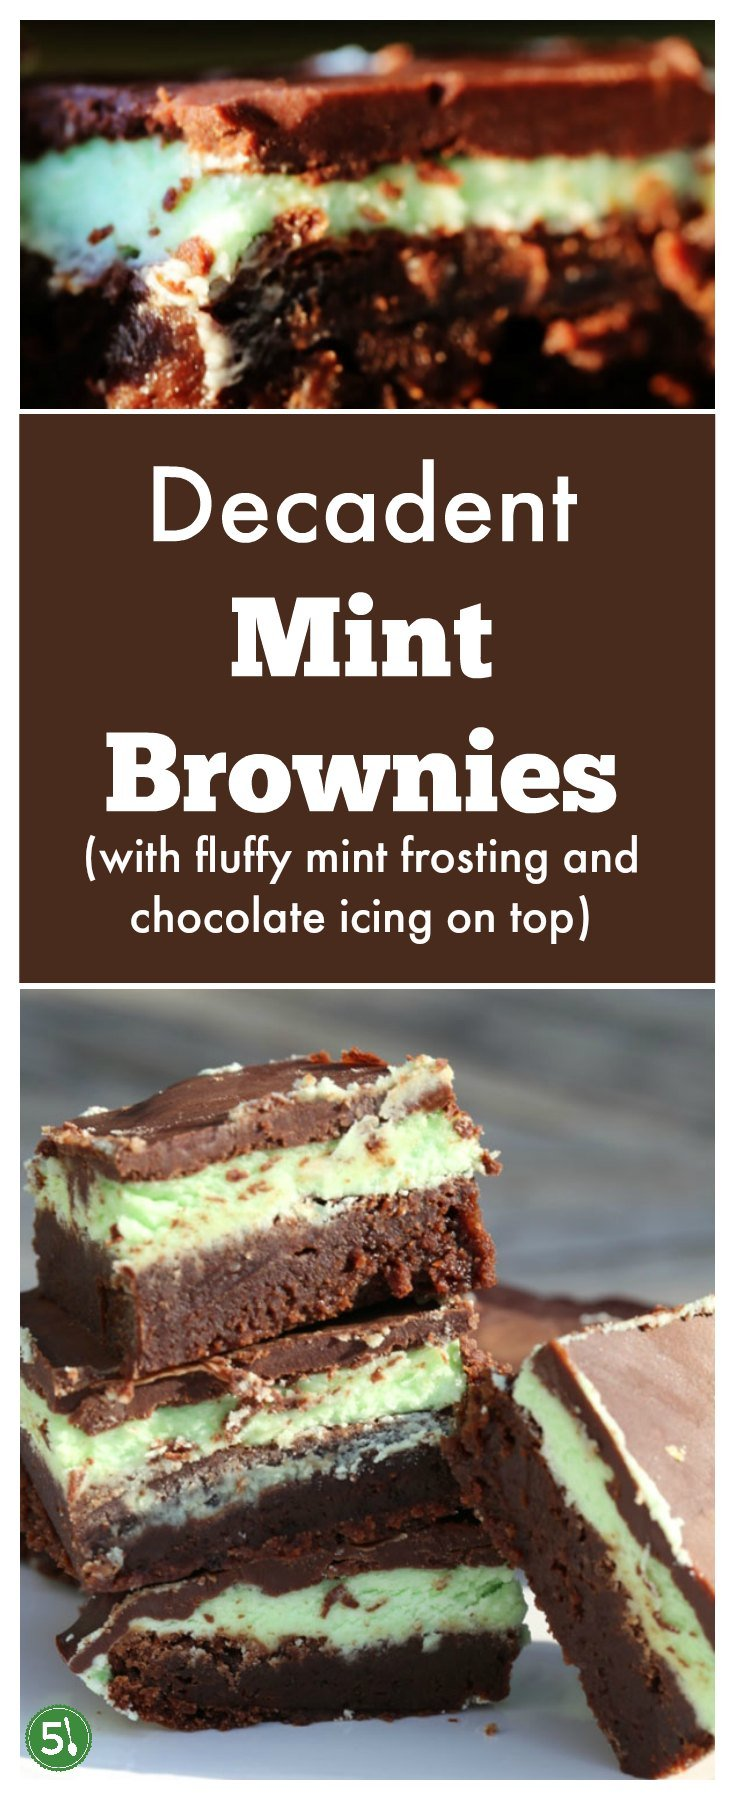 Mint brownies from scratch recipe using both chopped chocolates, and chocolate chips is decadent and on our list of favorite desserts.